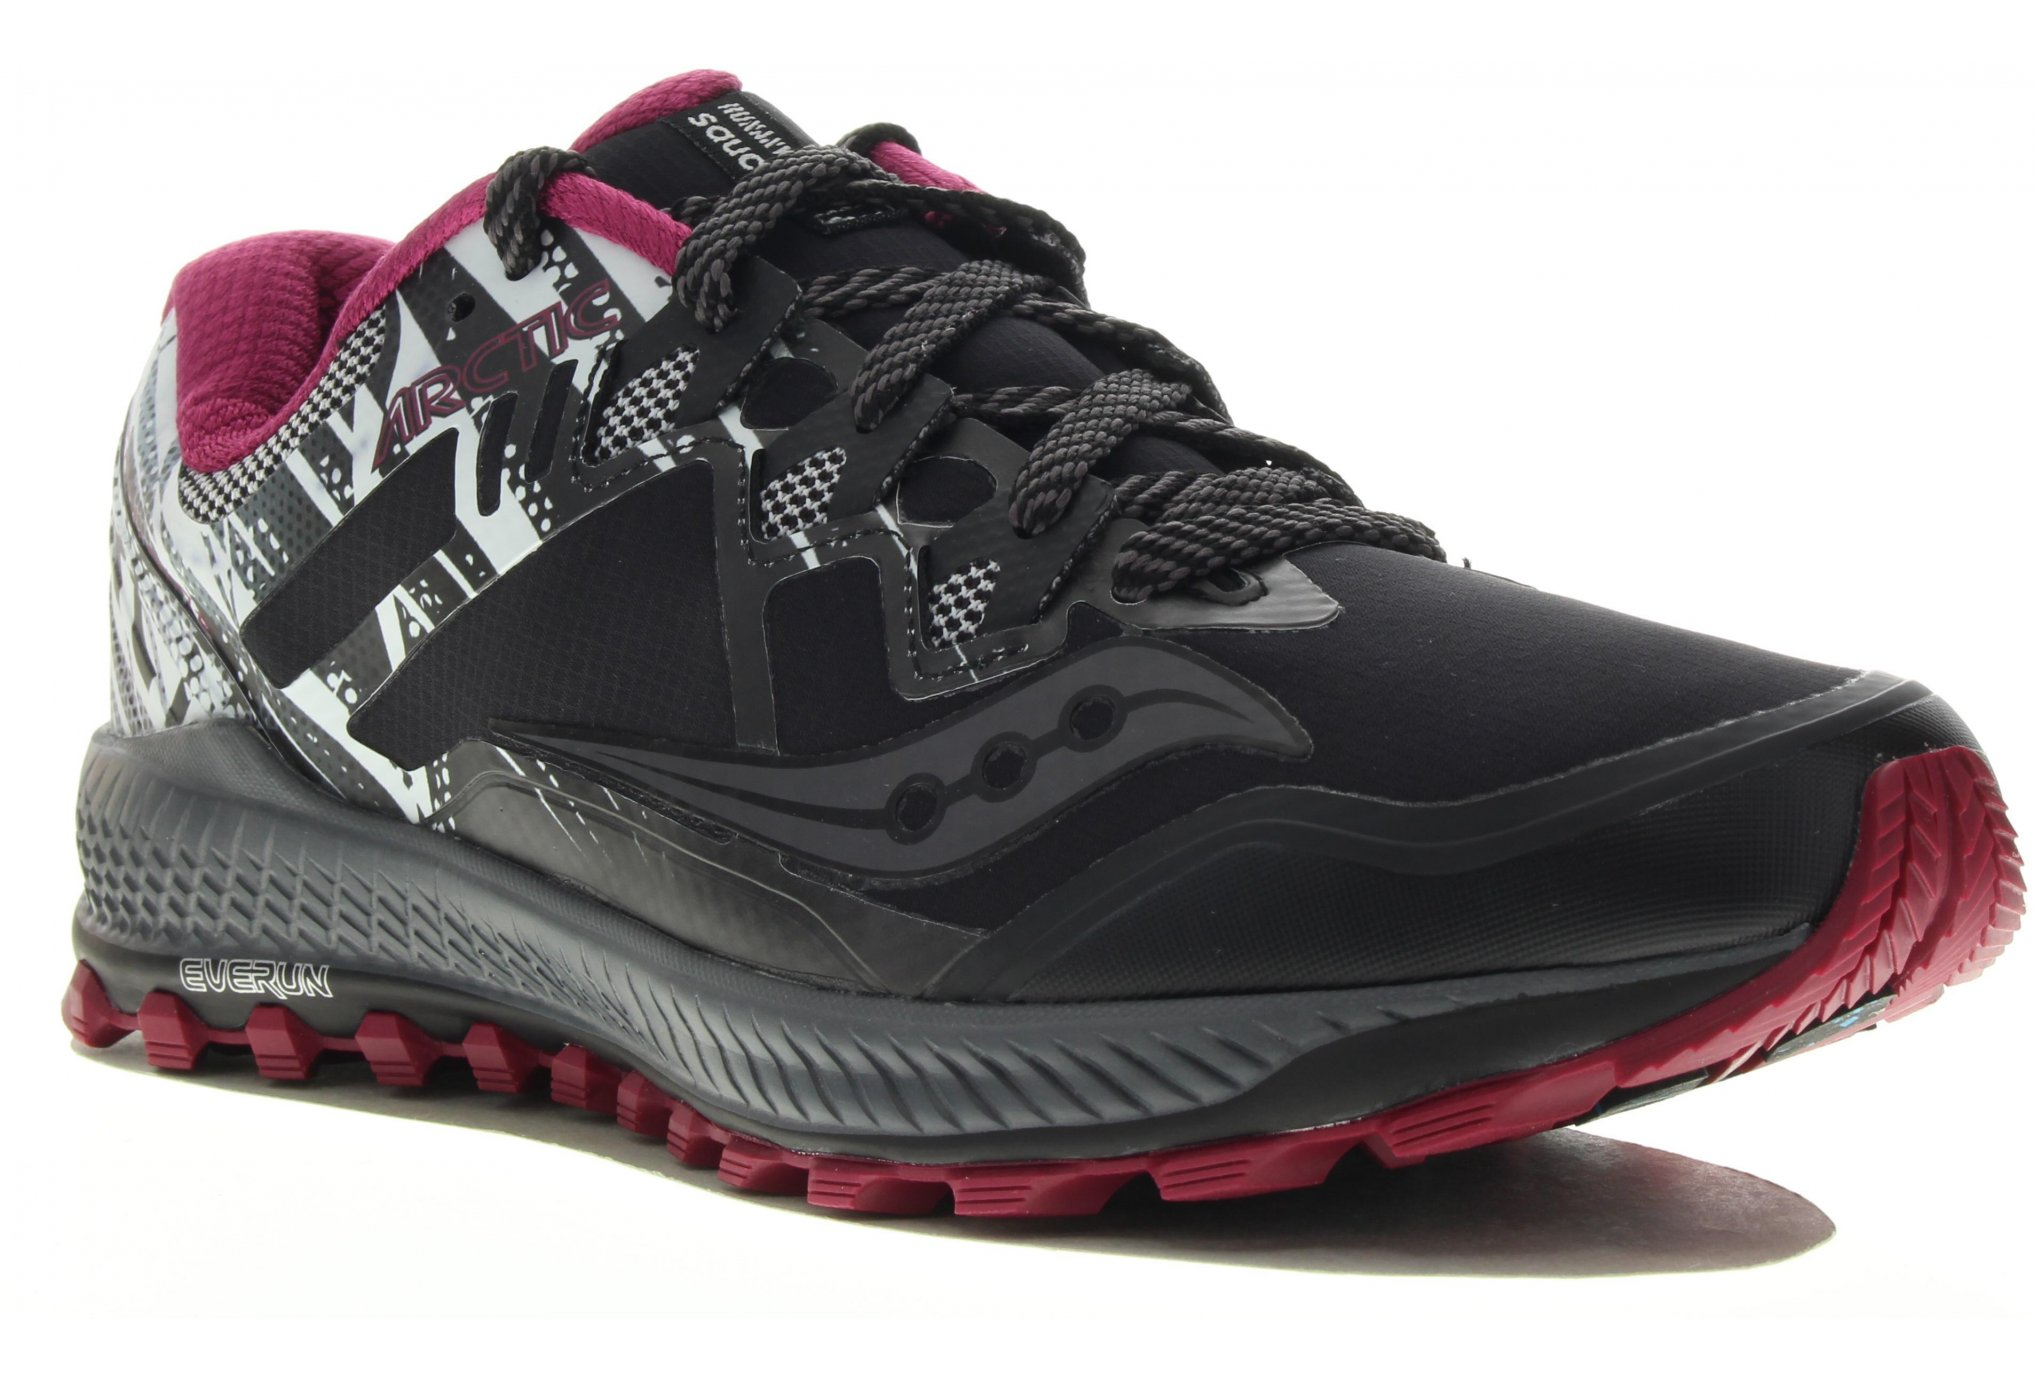 Saucony Peregrine 8 Ice+ Chaussures running femme